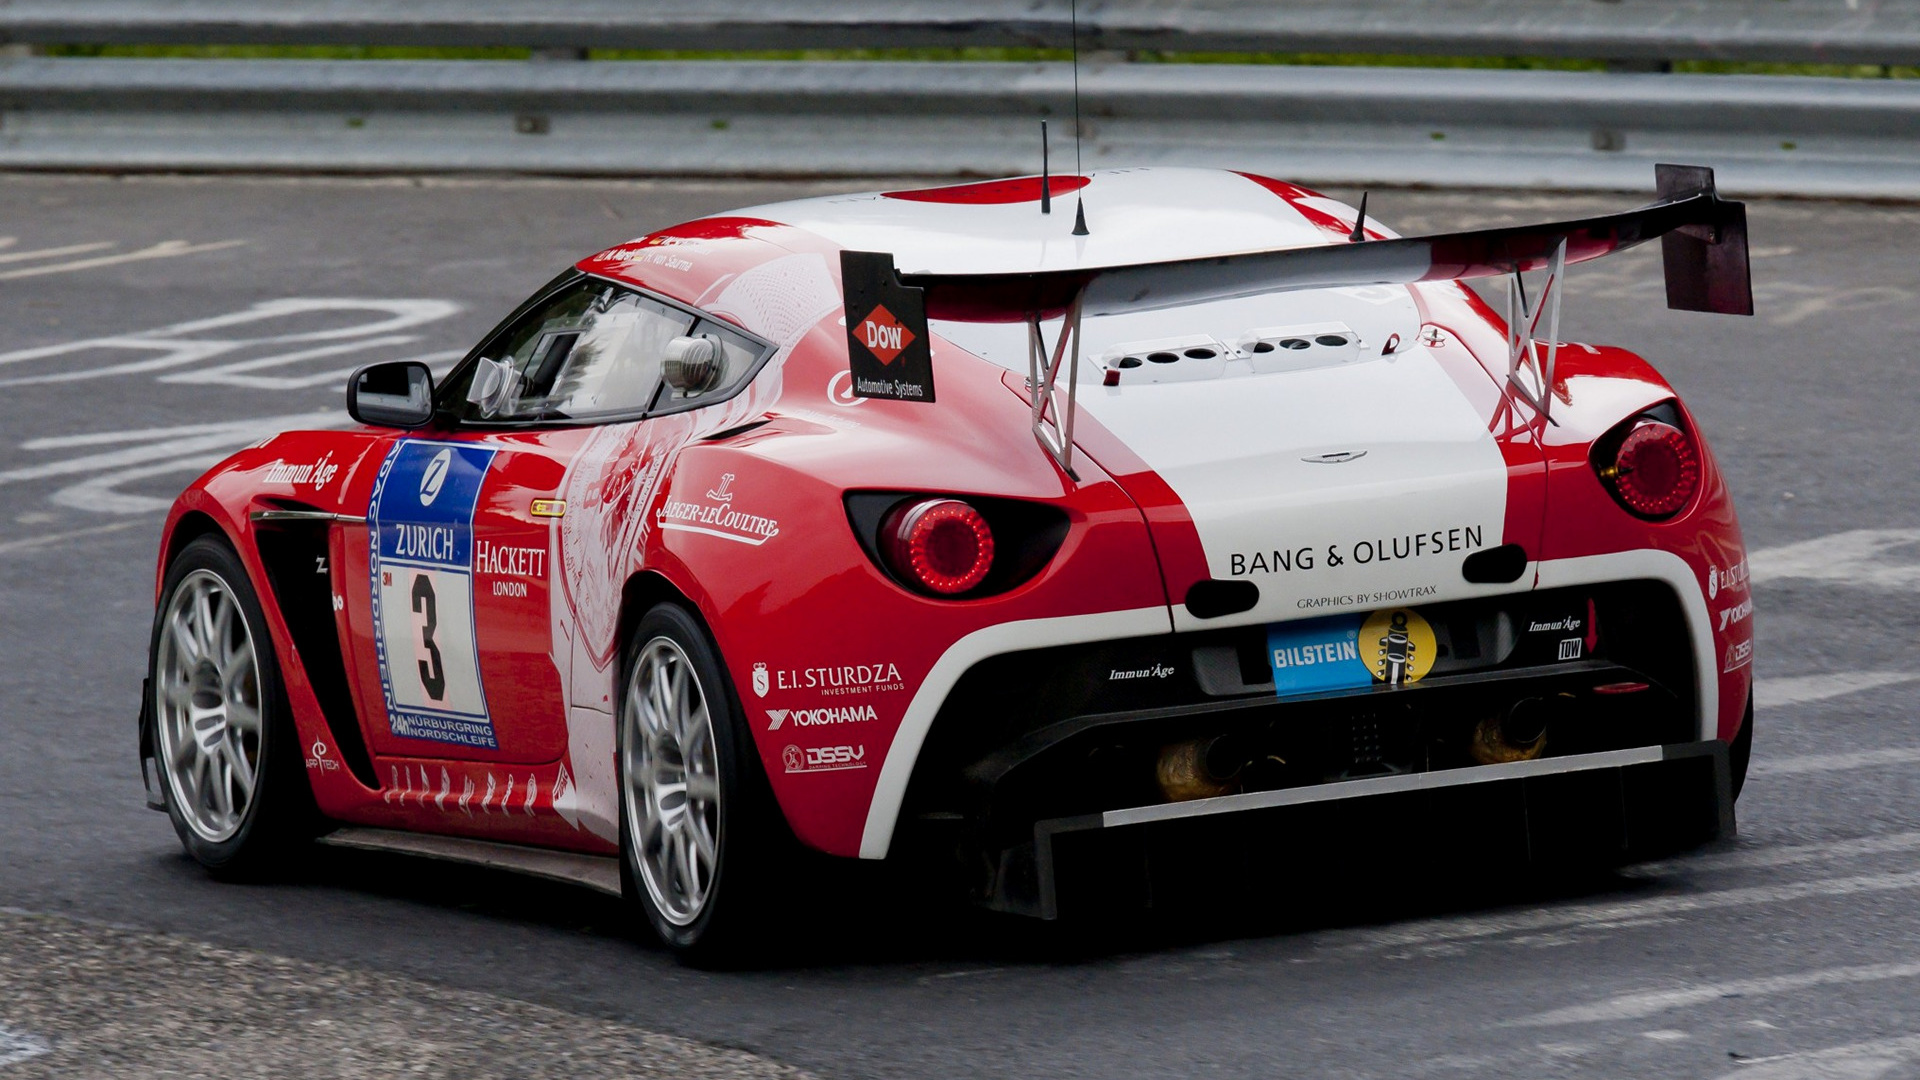 HD 16:9 · Wide 8:5 · Aston Martin V12 Zagato Race Car ...